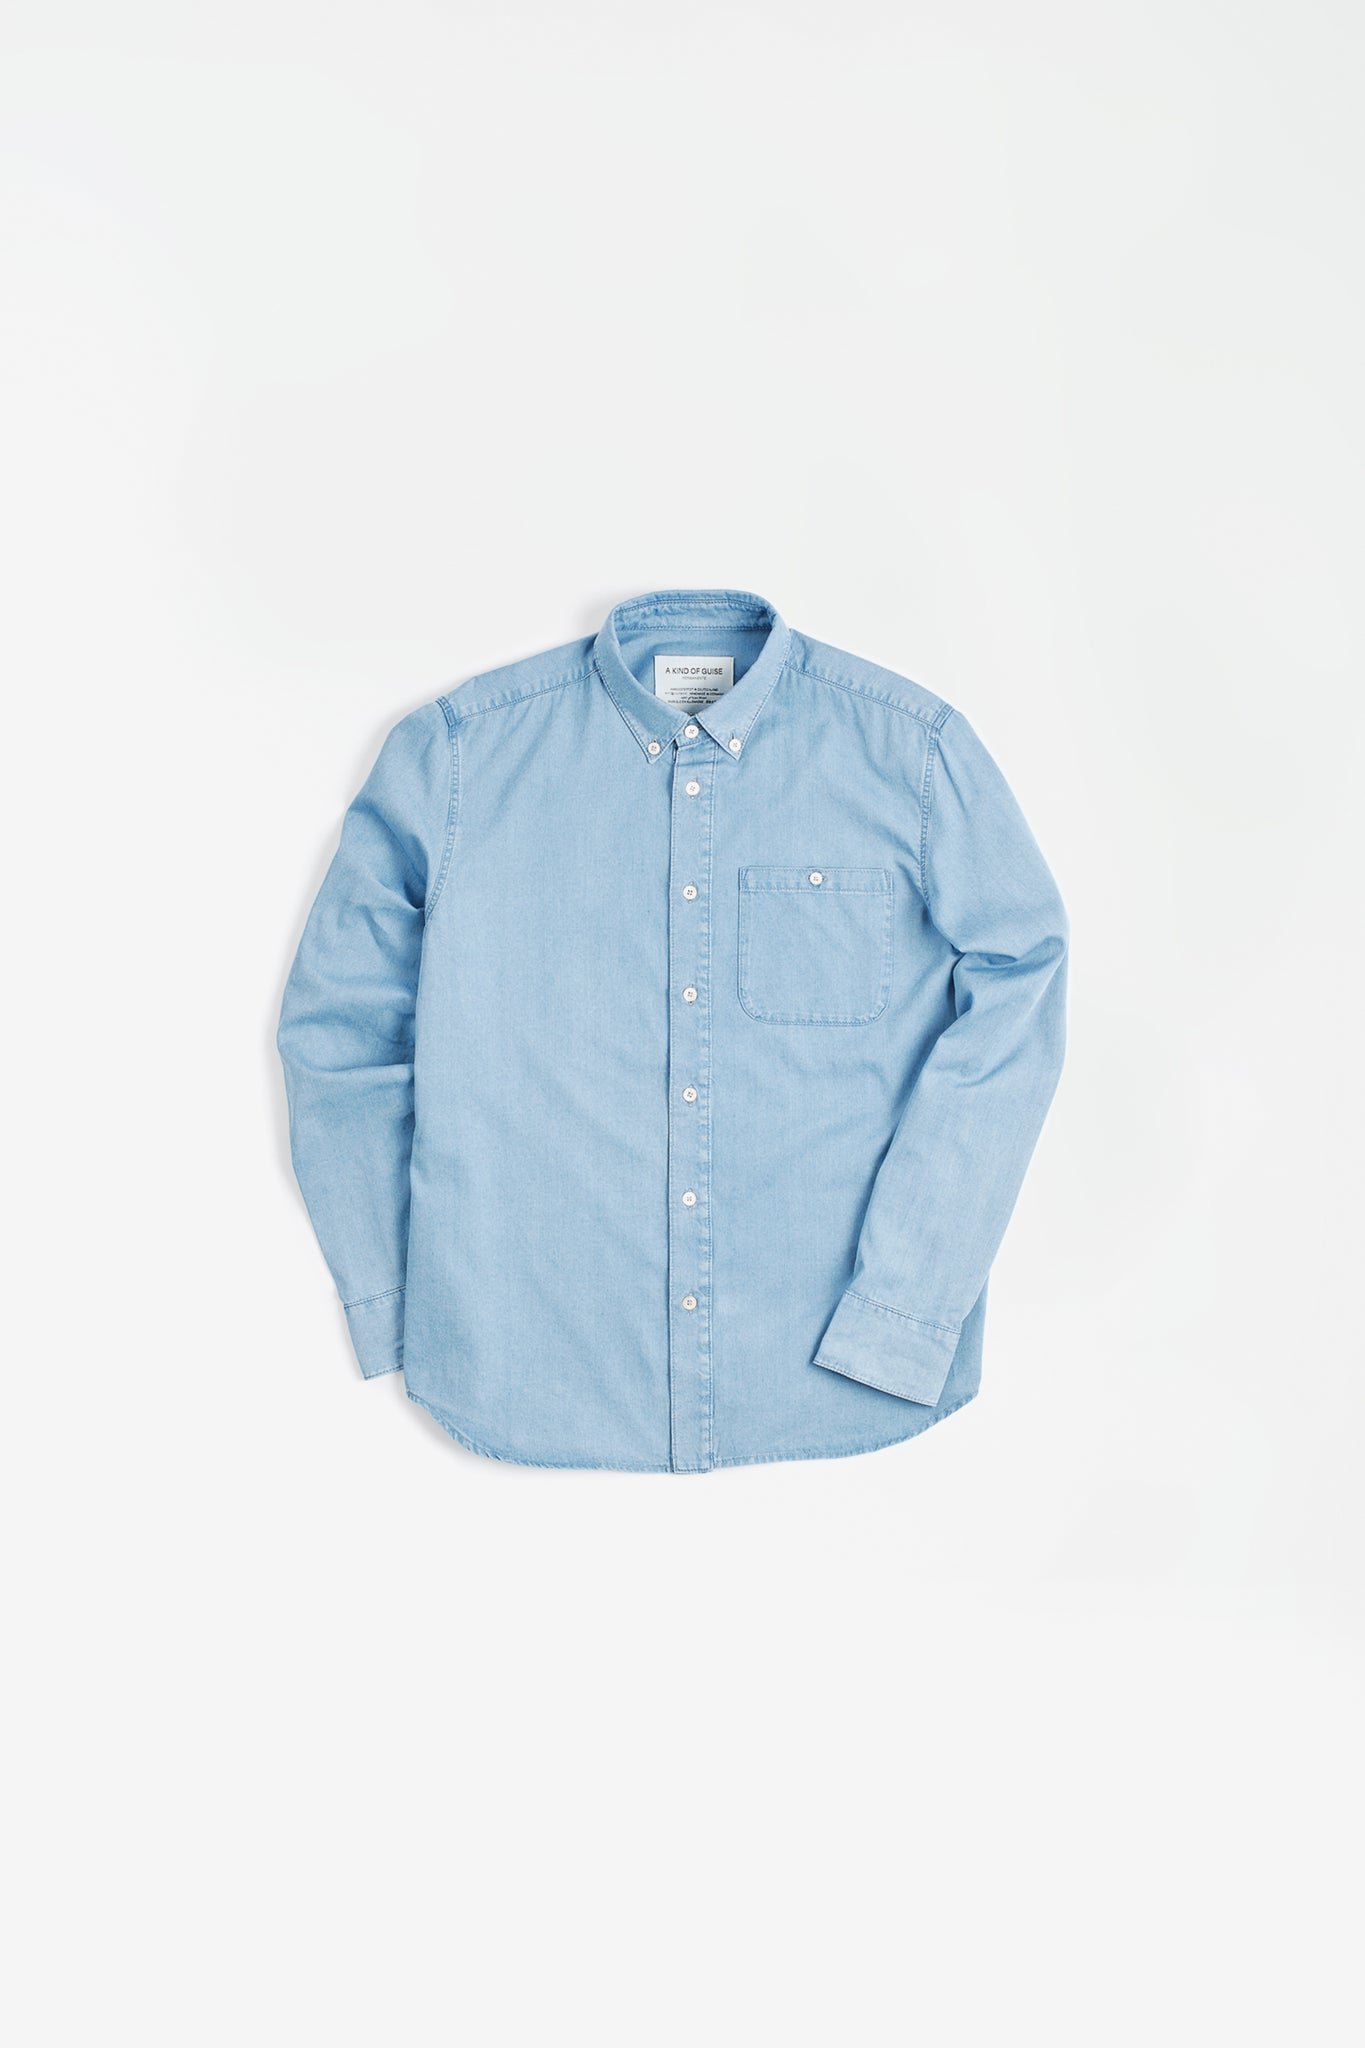 Permanents button down shirt bleached blue denim